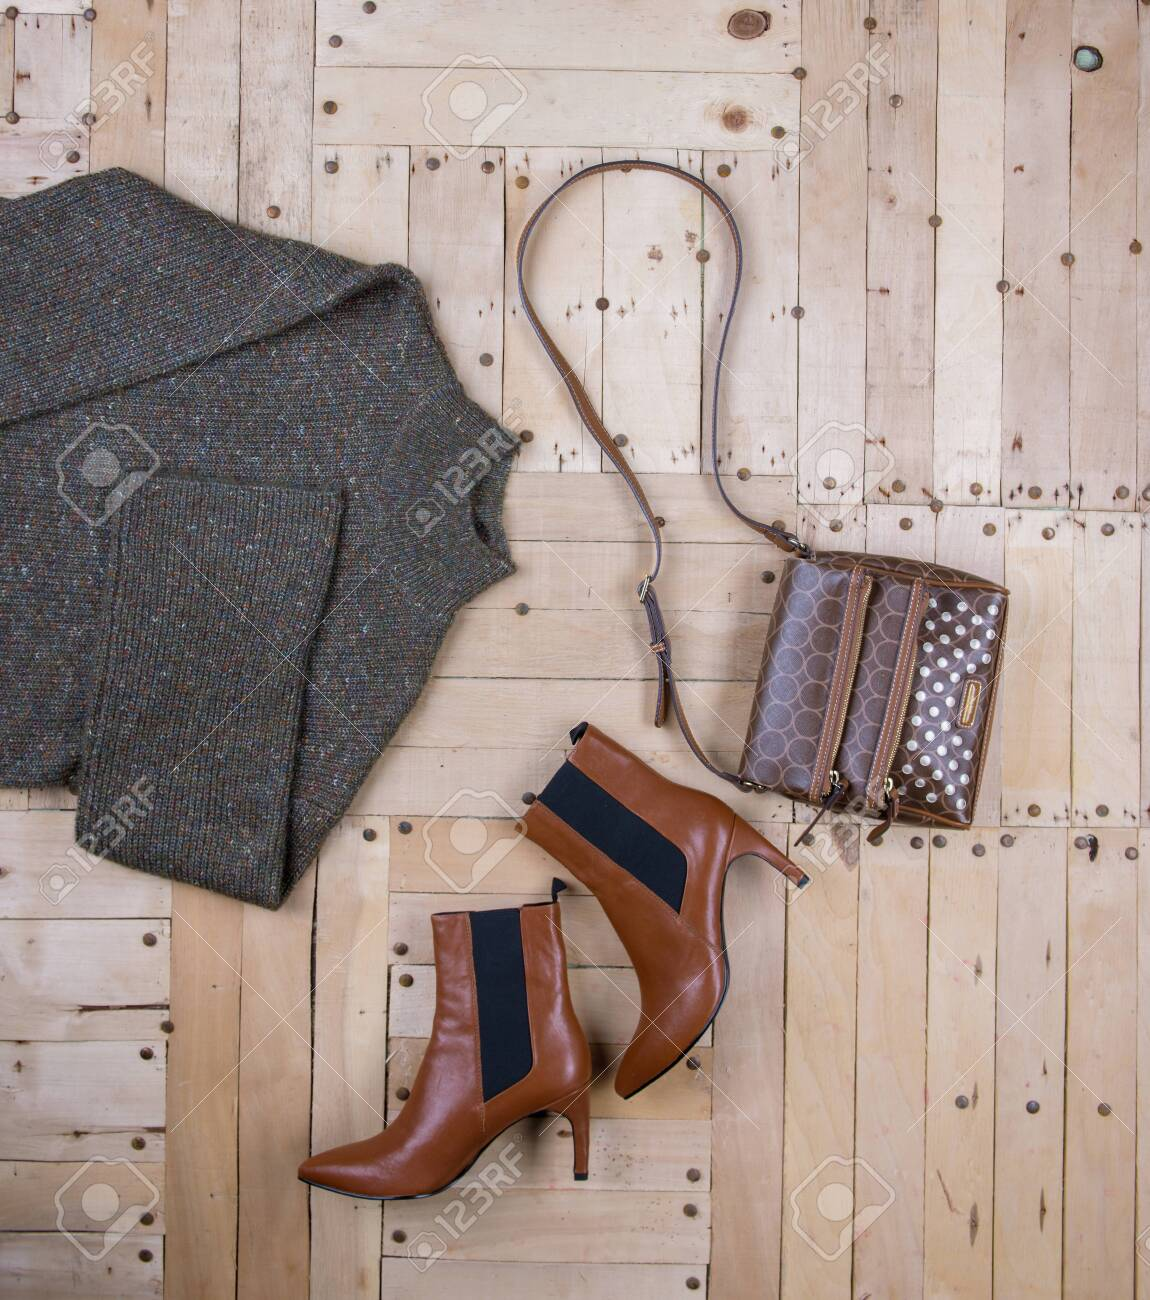 Women's autumn outfit on wooden background - 133252665